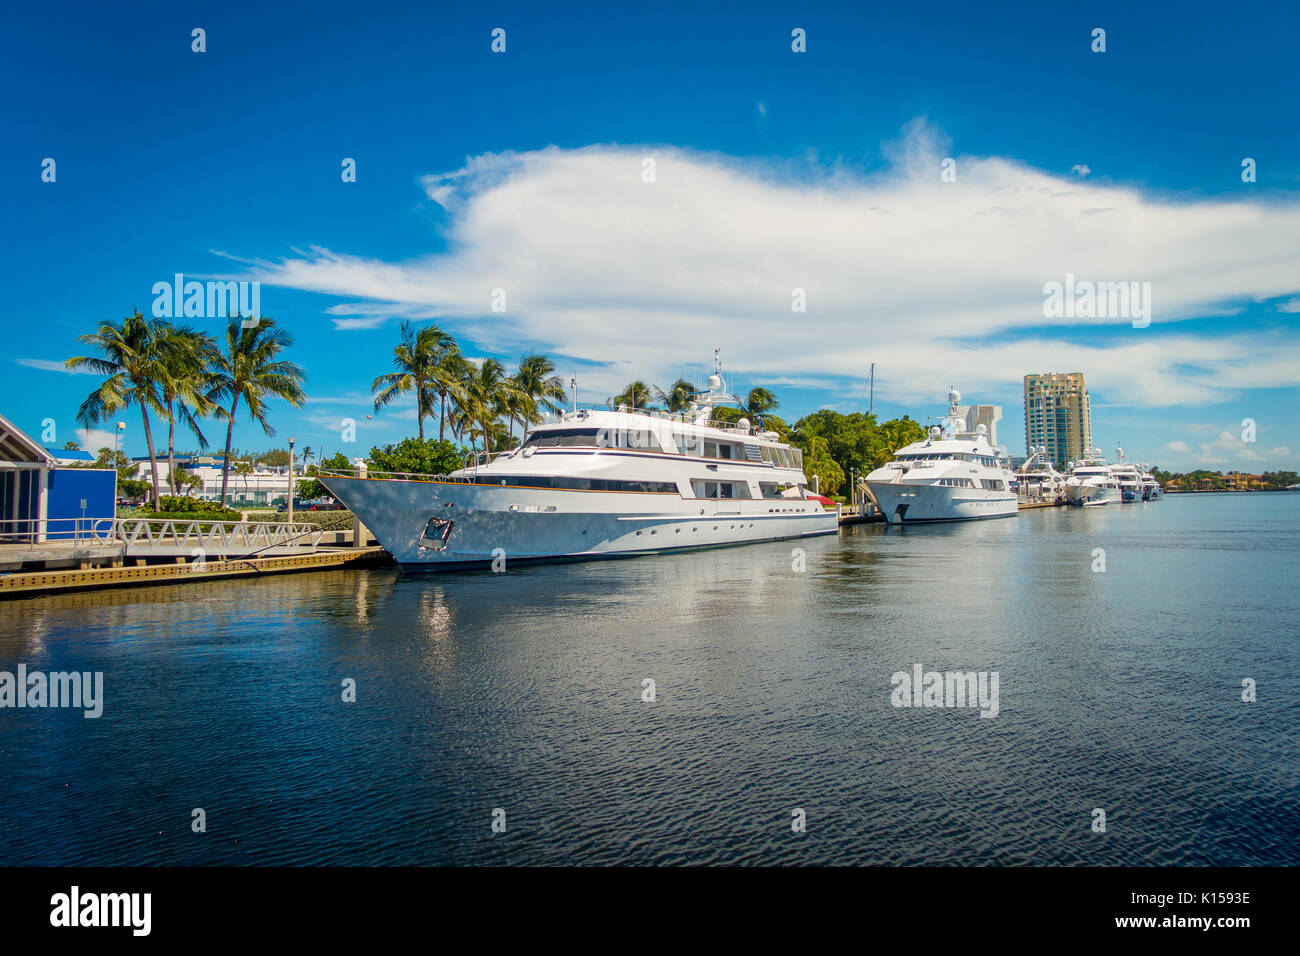 FORT LAUDERDALE, USA - JULY 11, 2017: Big boats parked in the water in the pier at the Fort Lauderdale International Stock Photo